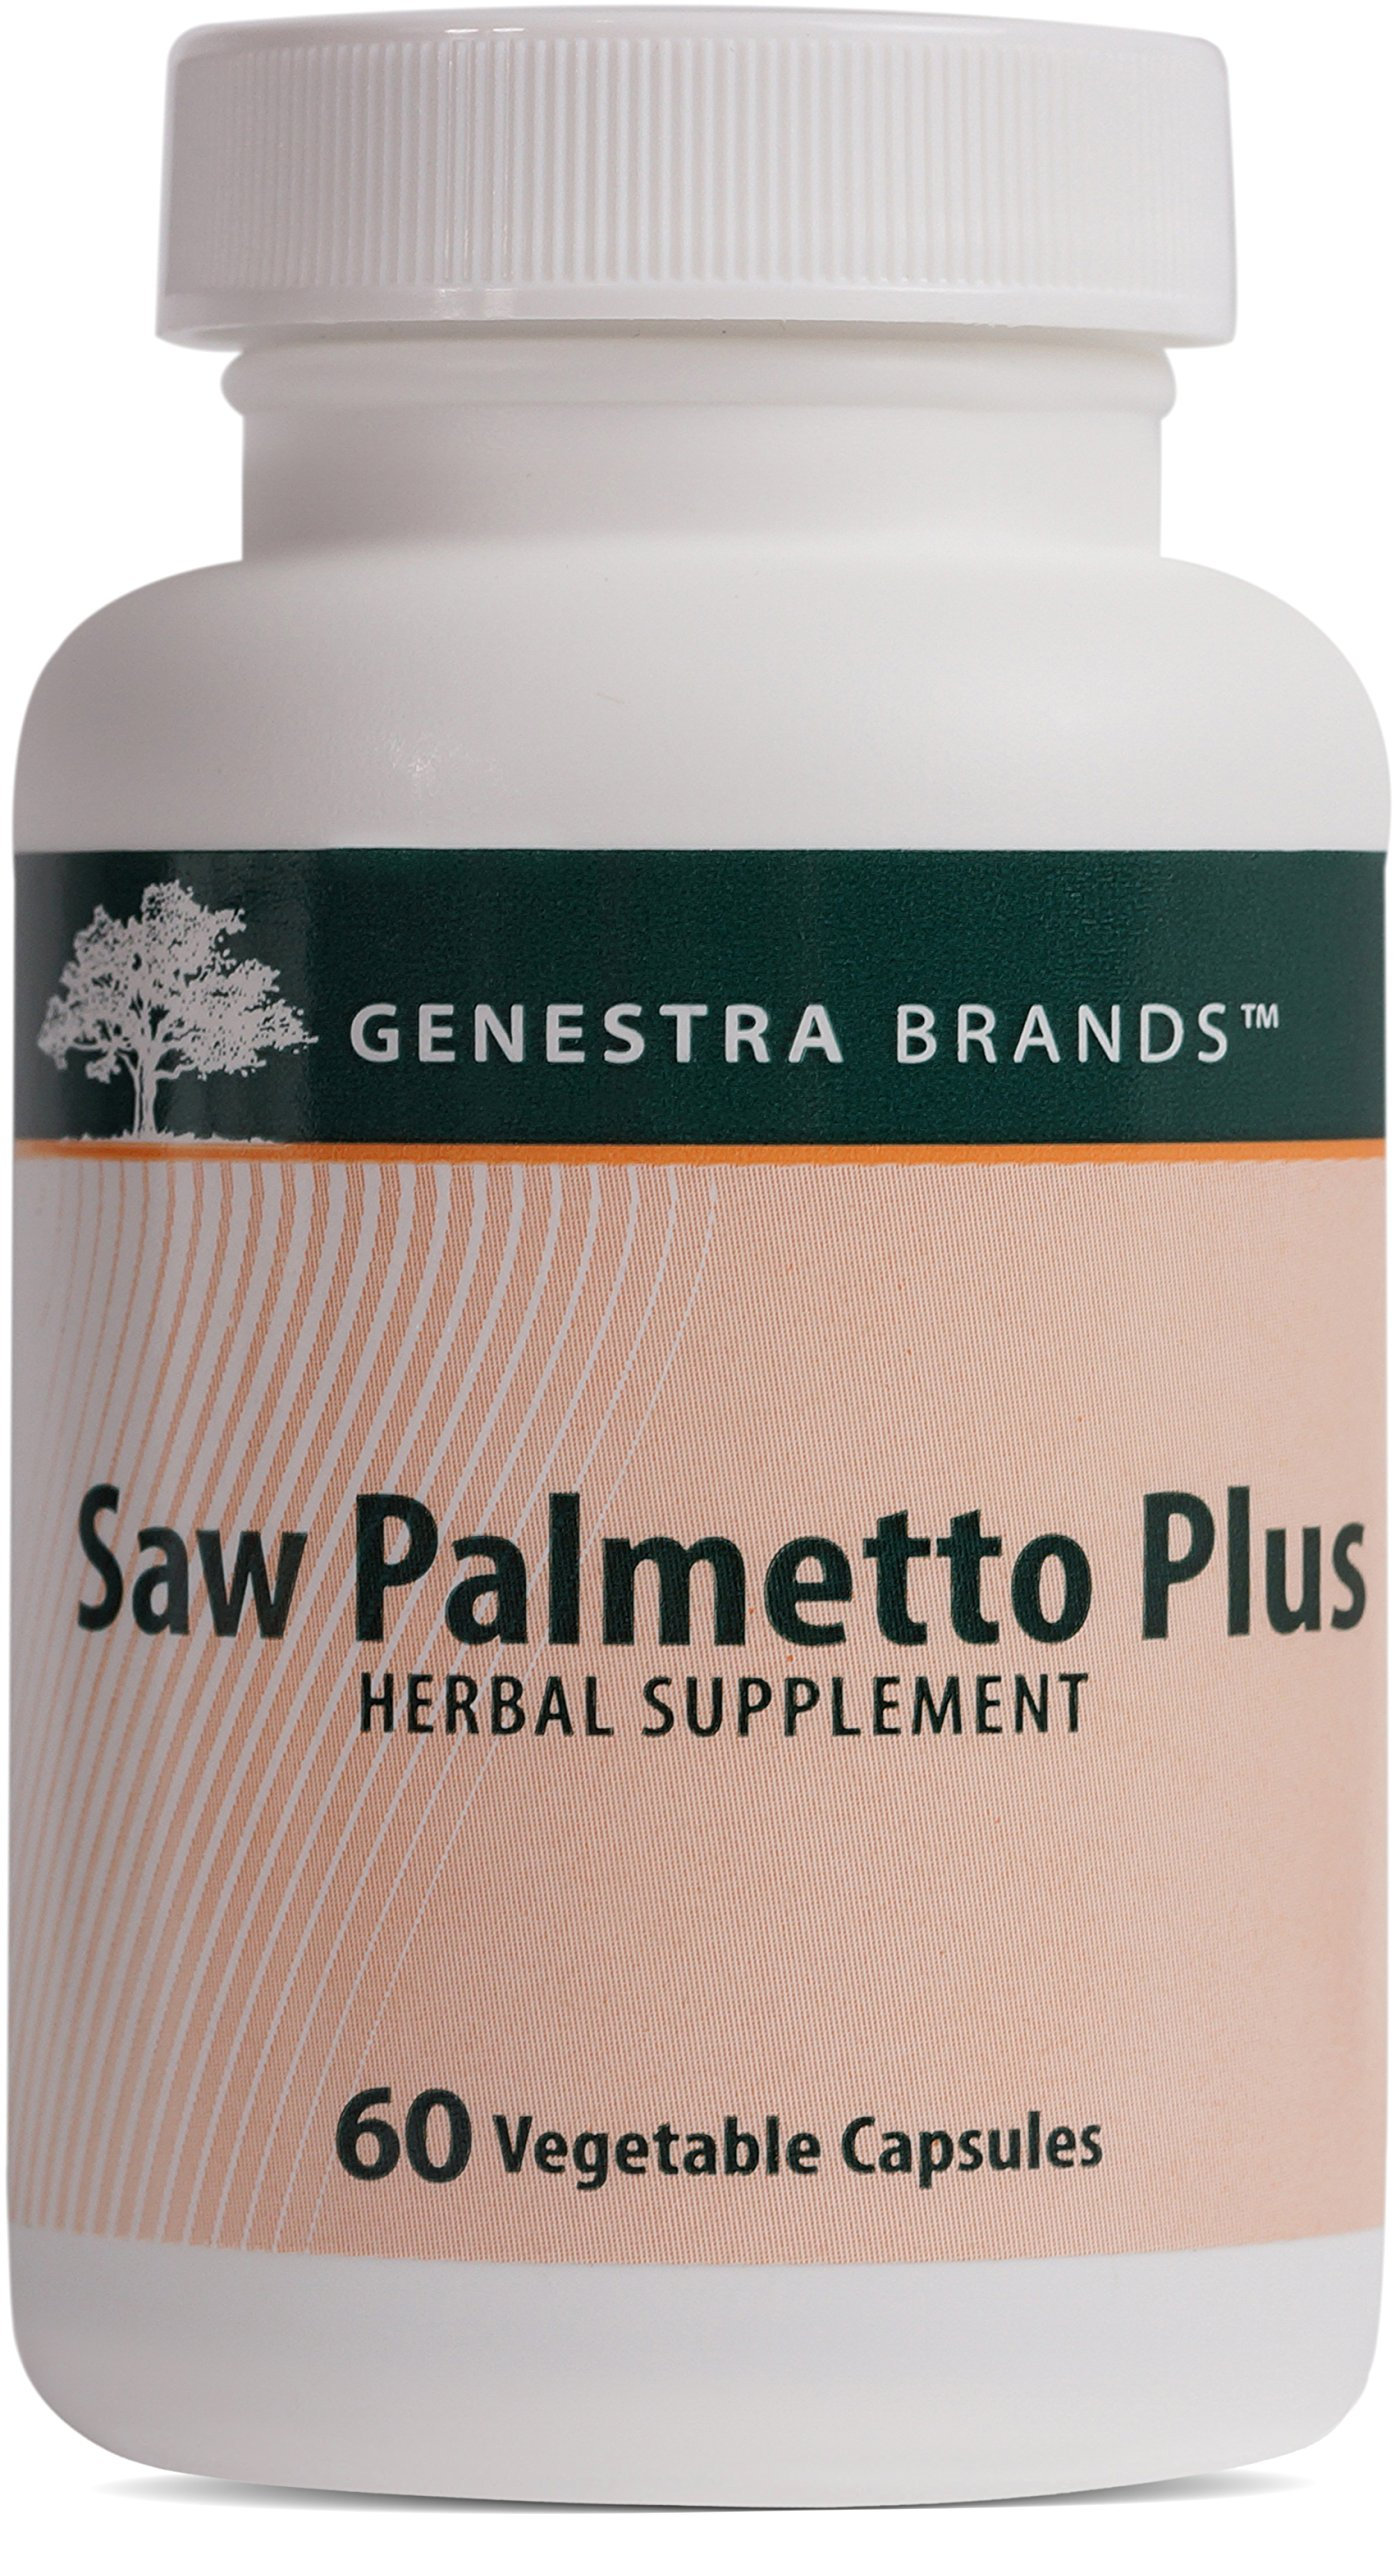 Genestra Brands - Saw Palmetto Plus - Standardized Herbal Extract for Prostate Health* - 60 Capsules